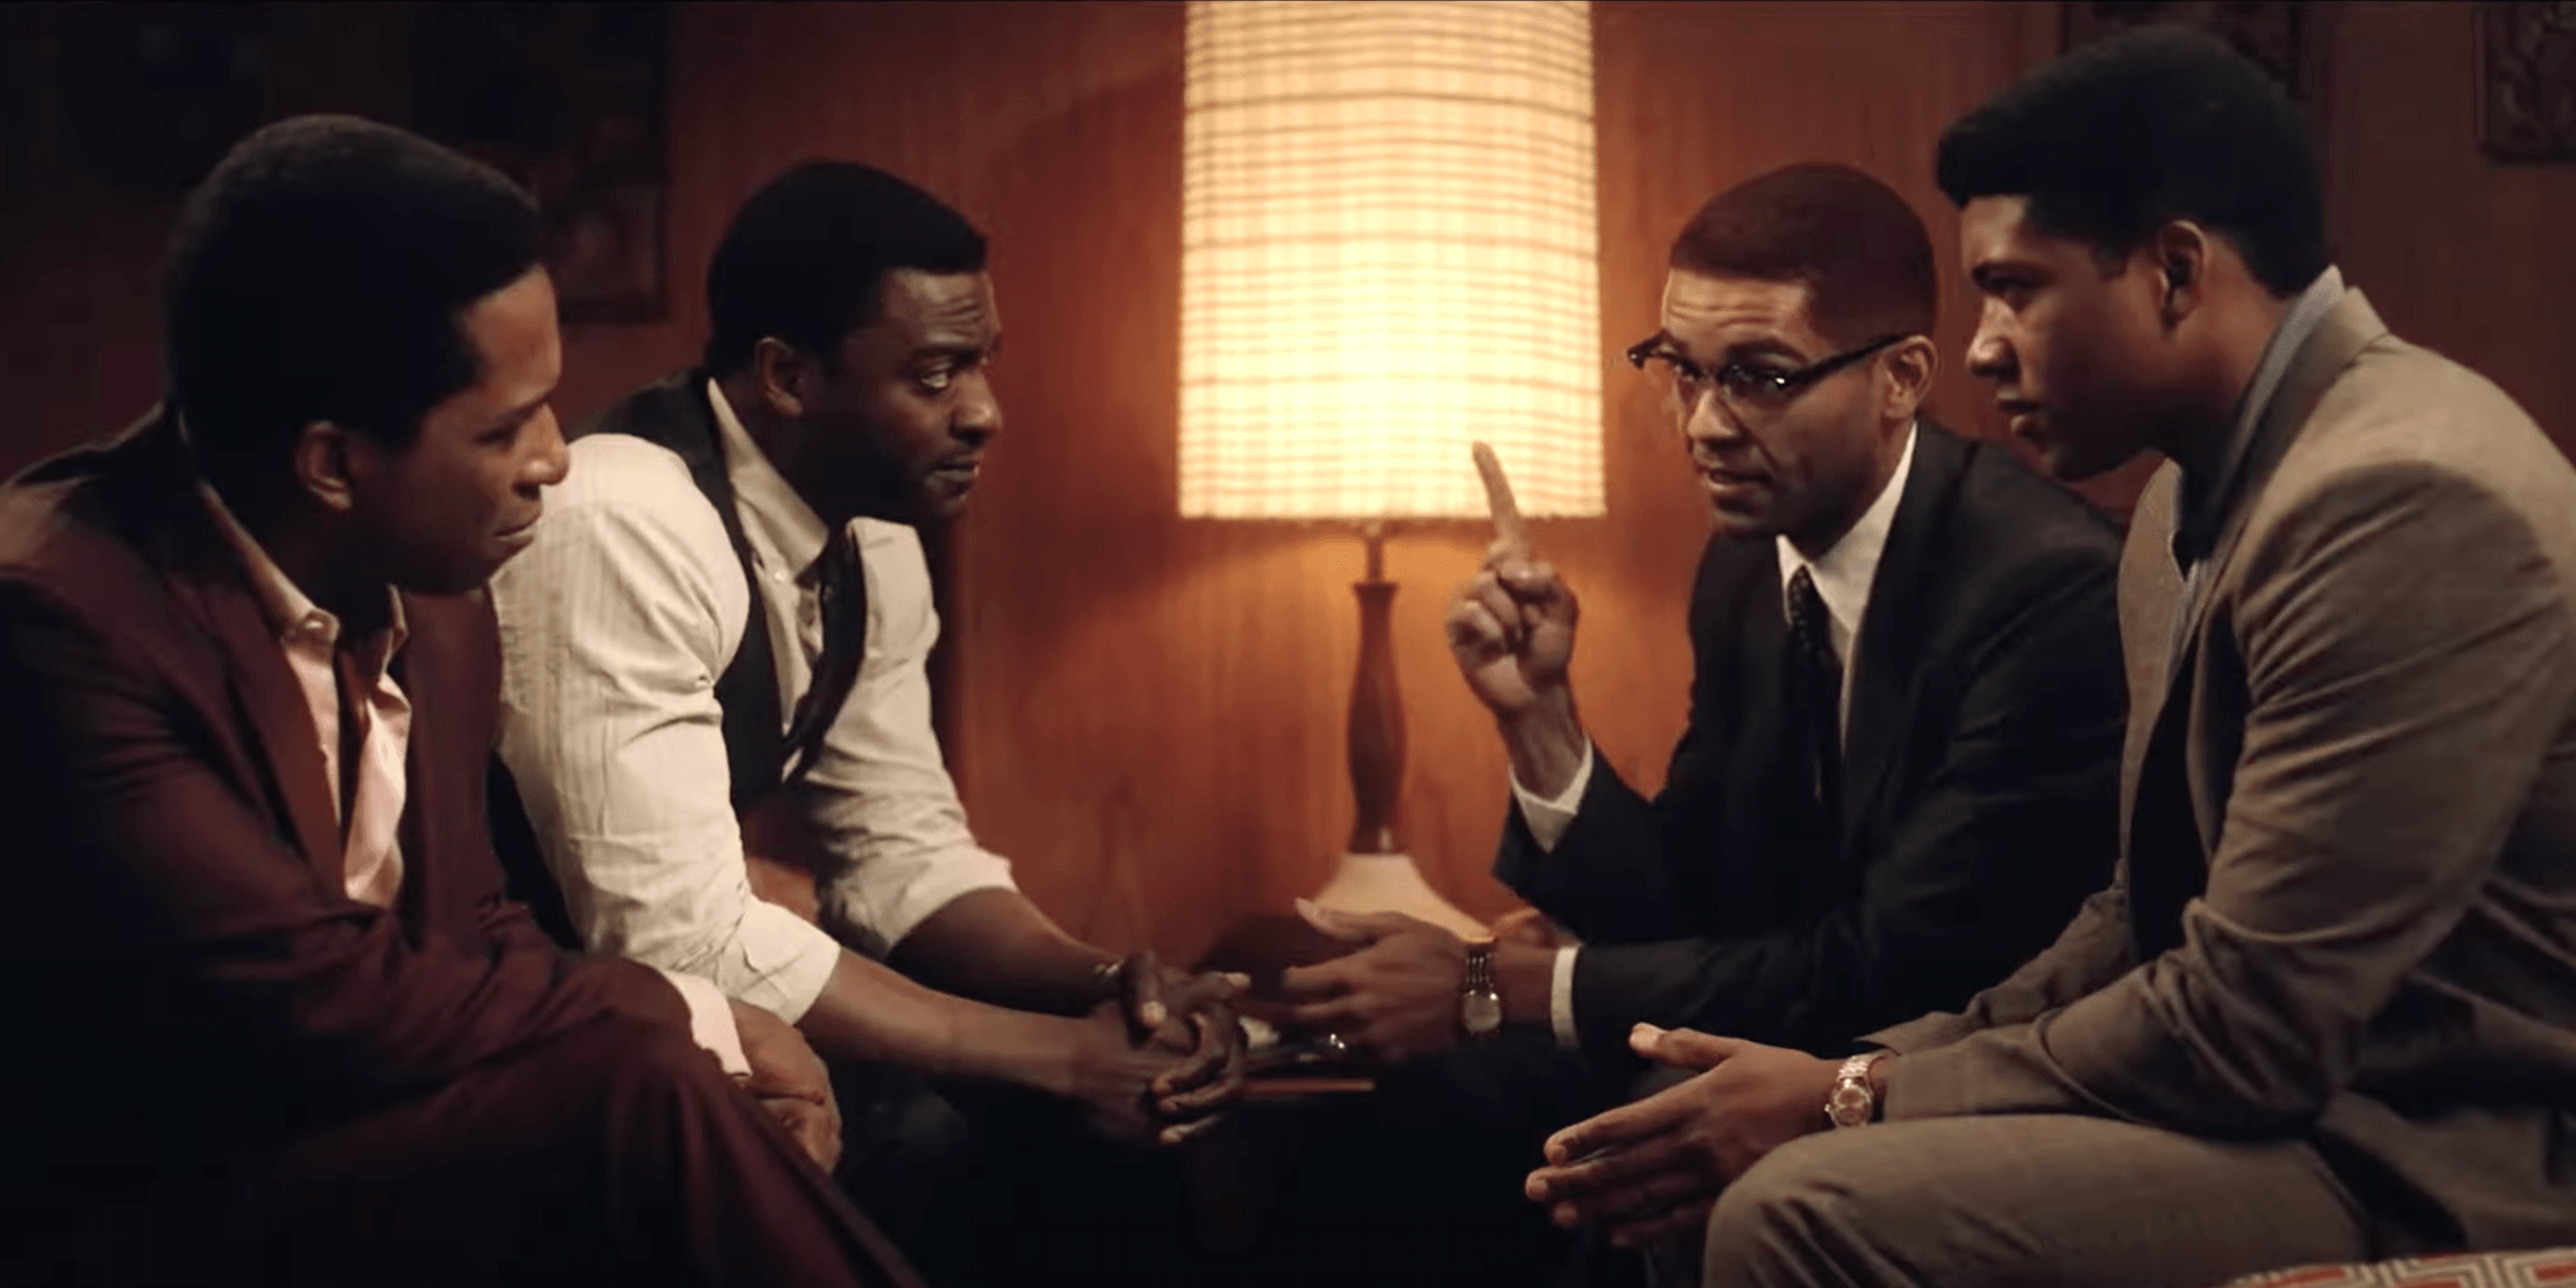 Muhammad Ali, Malcolm X, Sam Cooke, and Jim Brown talking